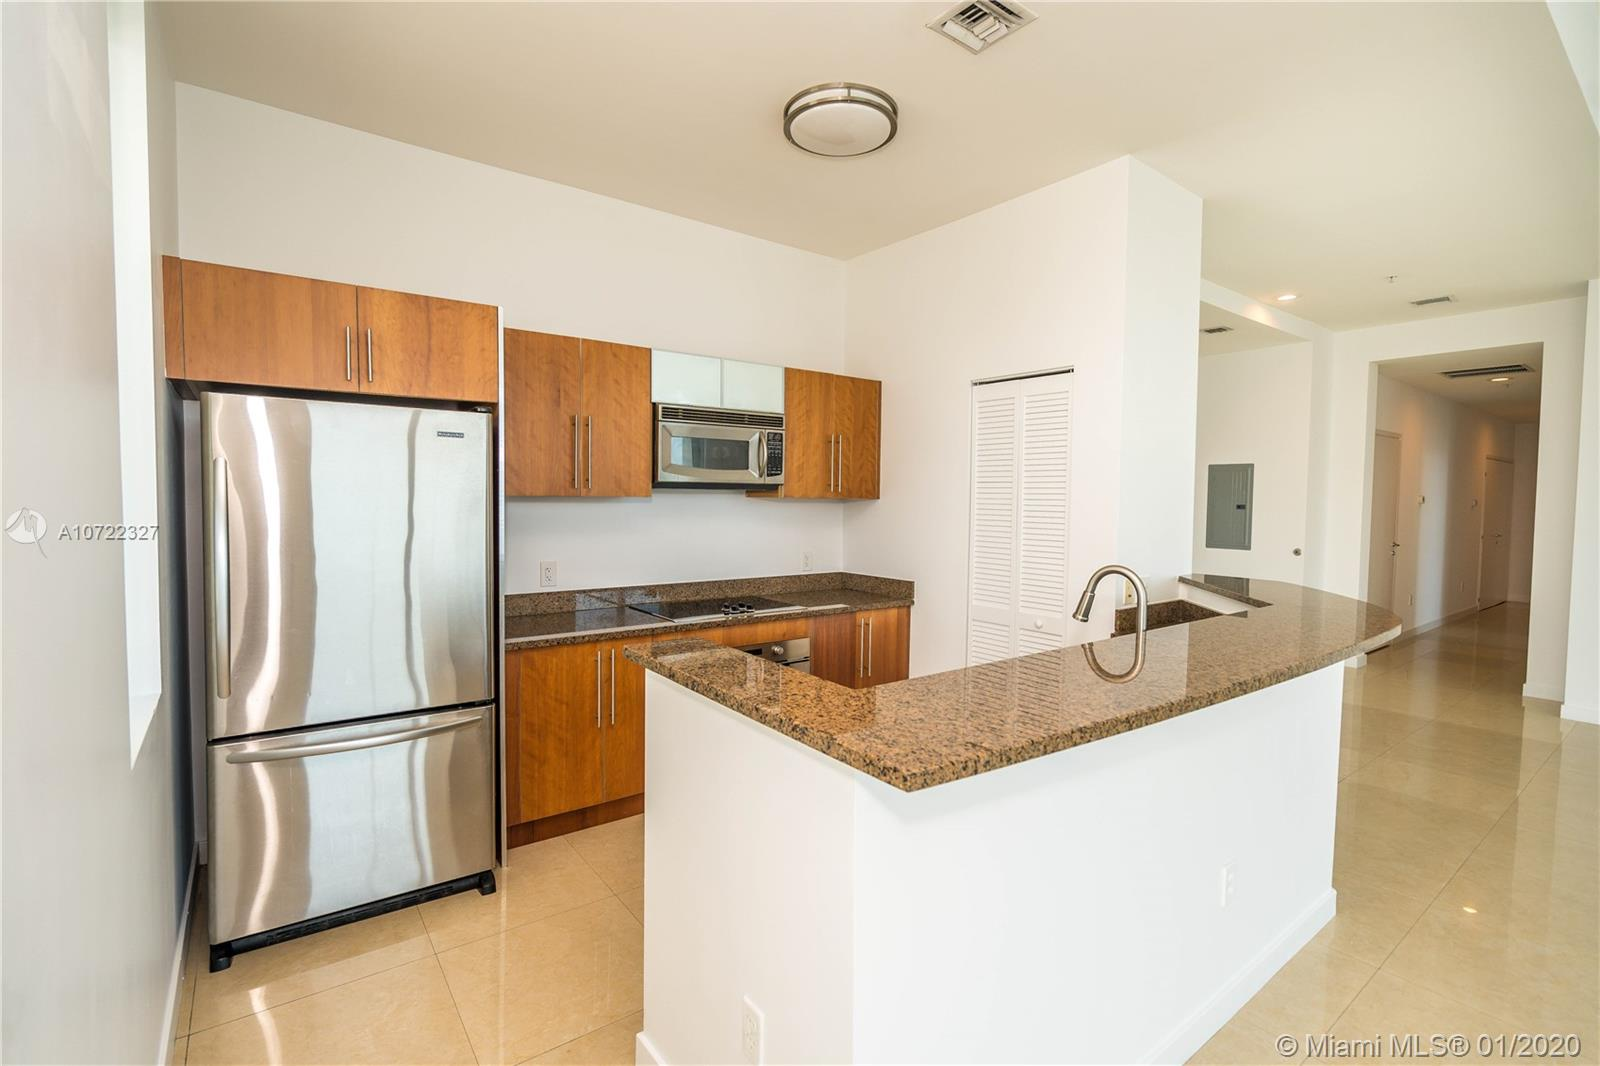 300 Biscayne blvd-PH 3802 miami-fl-33131-a10722327-Pic21